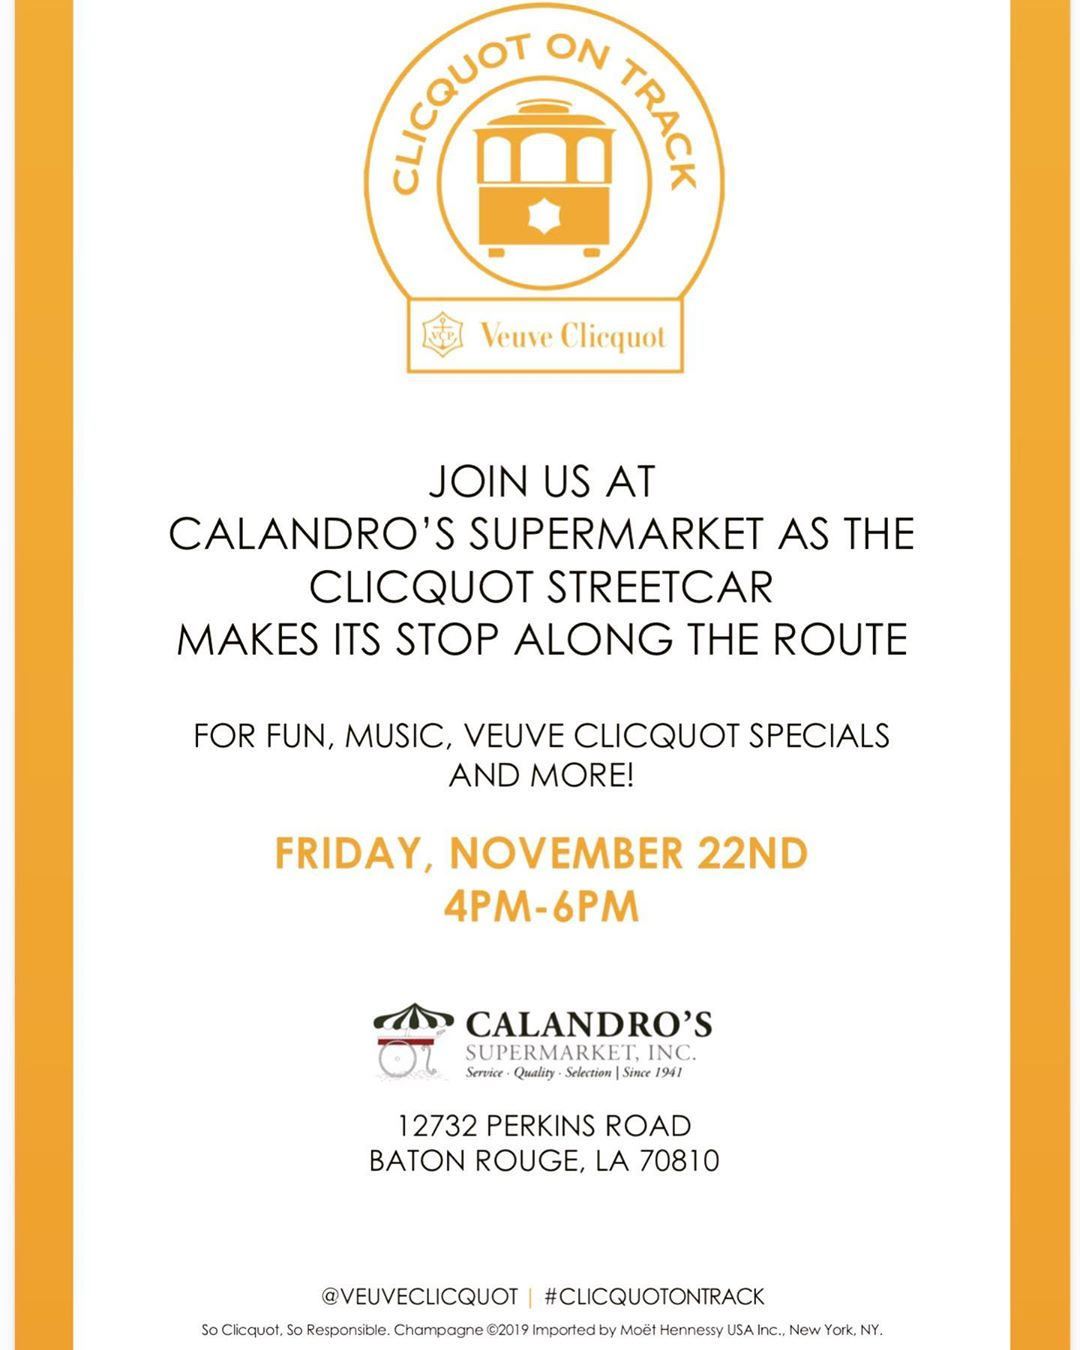 Veuve Clicquot's New Orleans Inspired streetcar will be making a stop by Calandro's on Perkins…